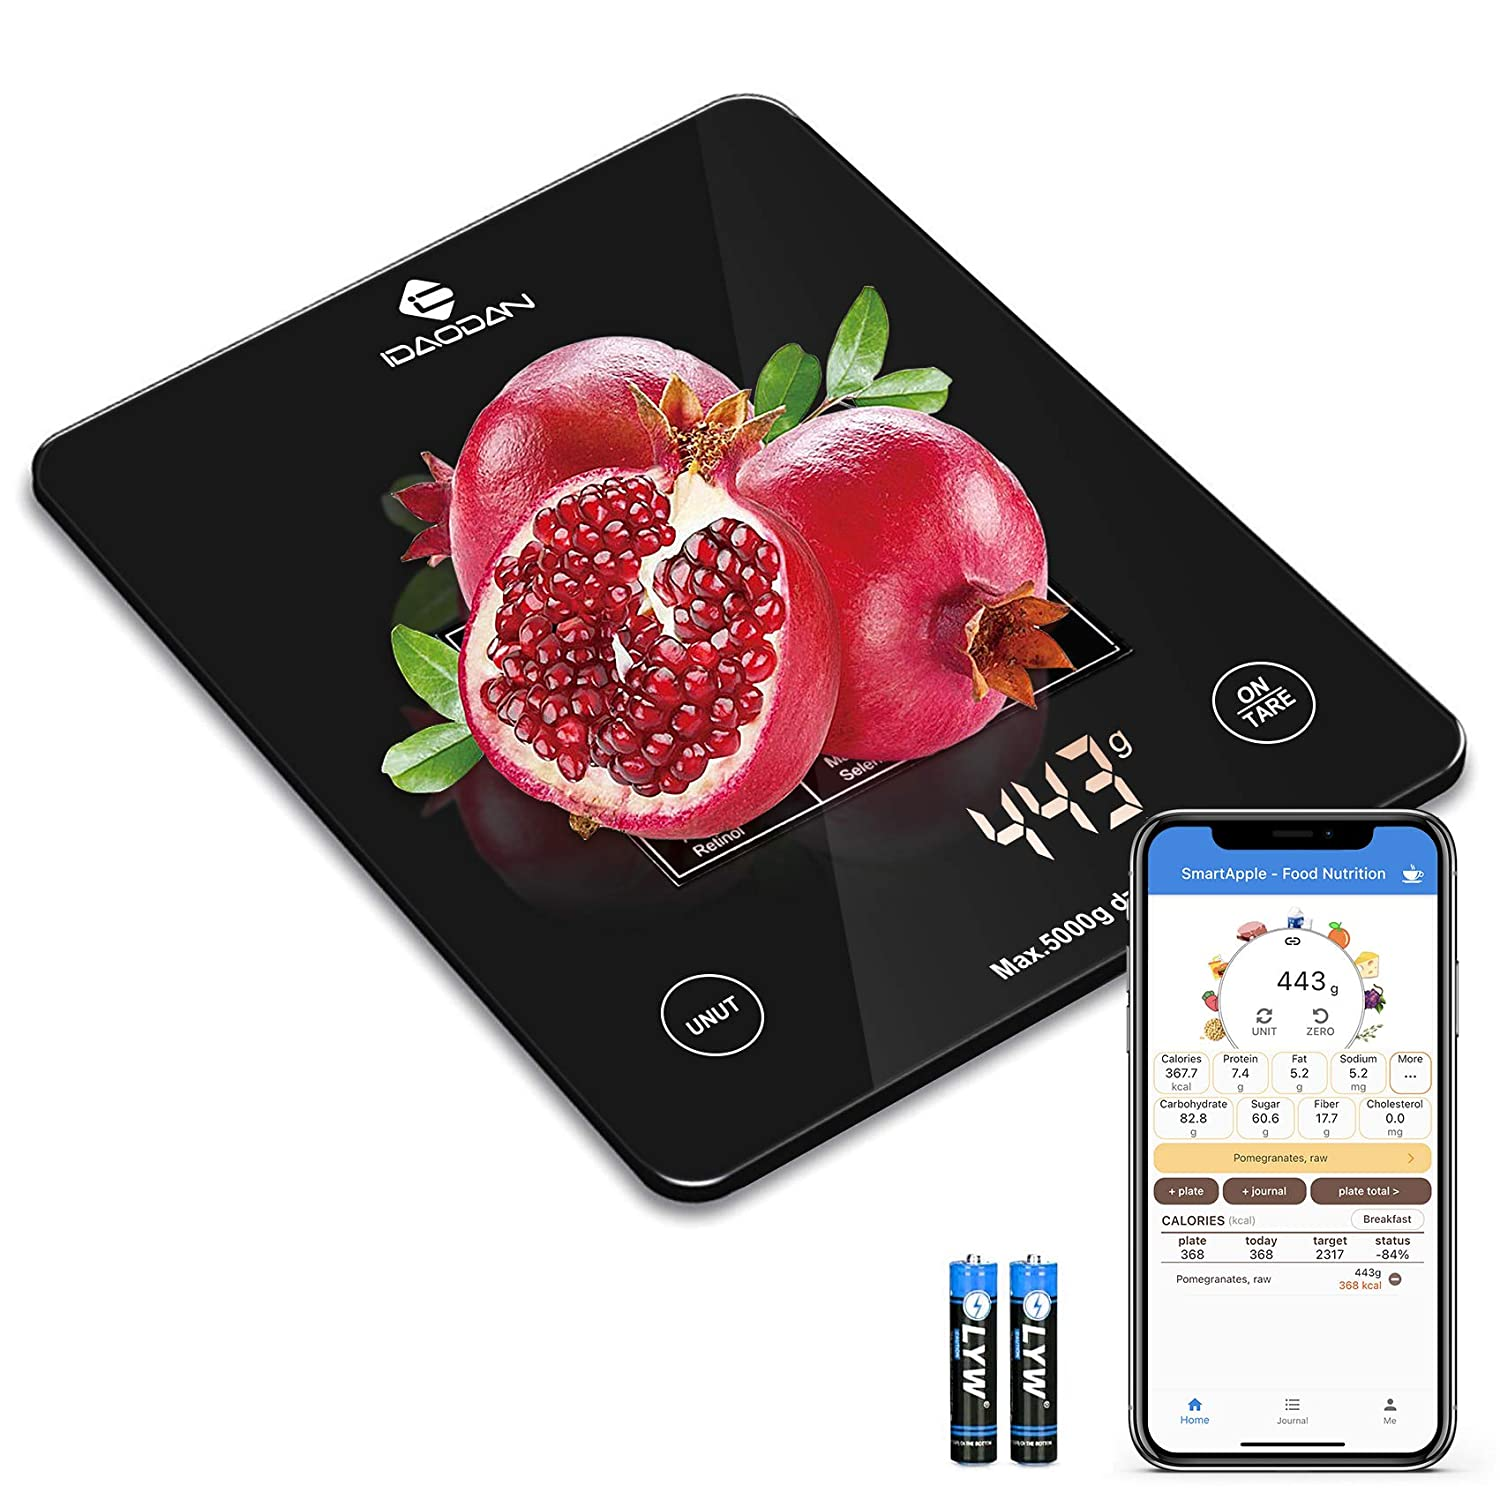 IDAODAN Digital Nutrition Smart Food Scale, Kitchen Scale, Nutrition Bluetooth Scale and Timer Multifunction Coffee Scale with Smartphone APP for Baking, Cooking Macro, Calorie,Weight Loss